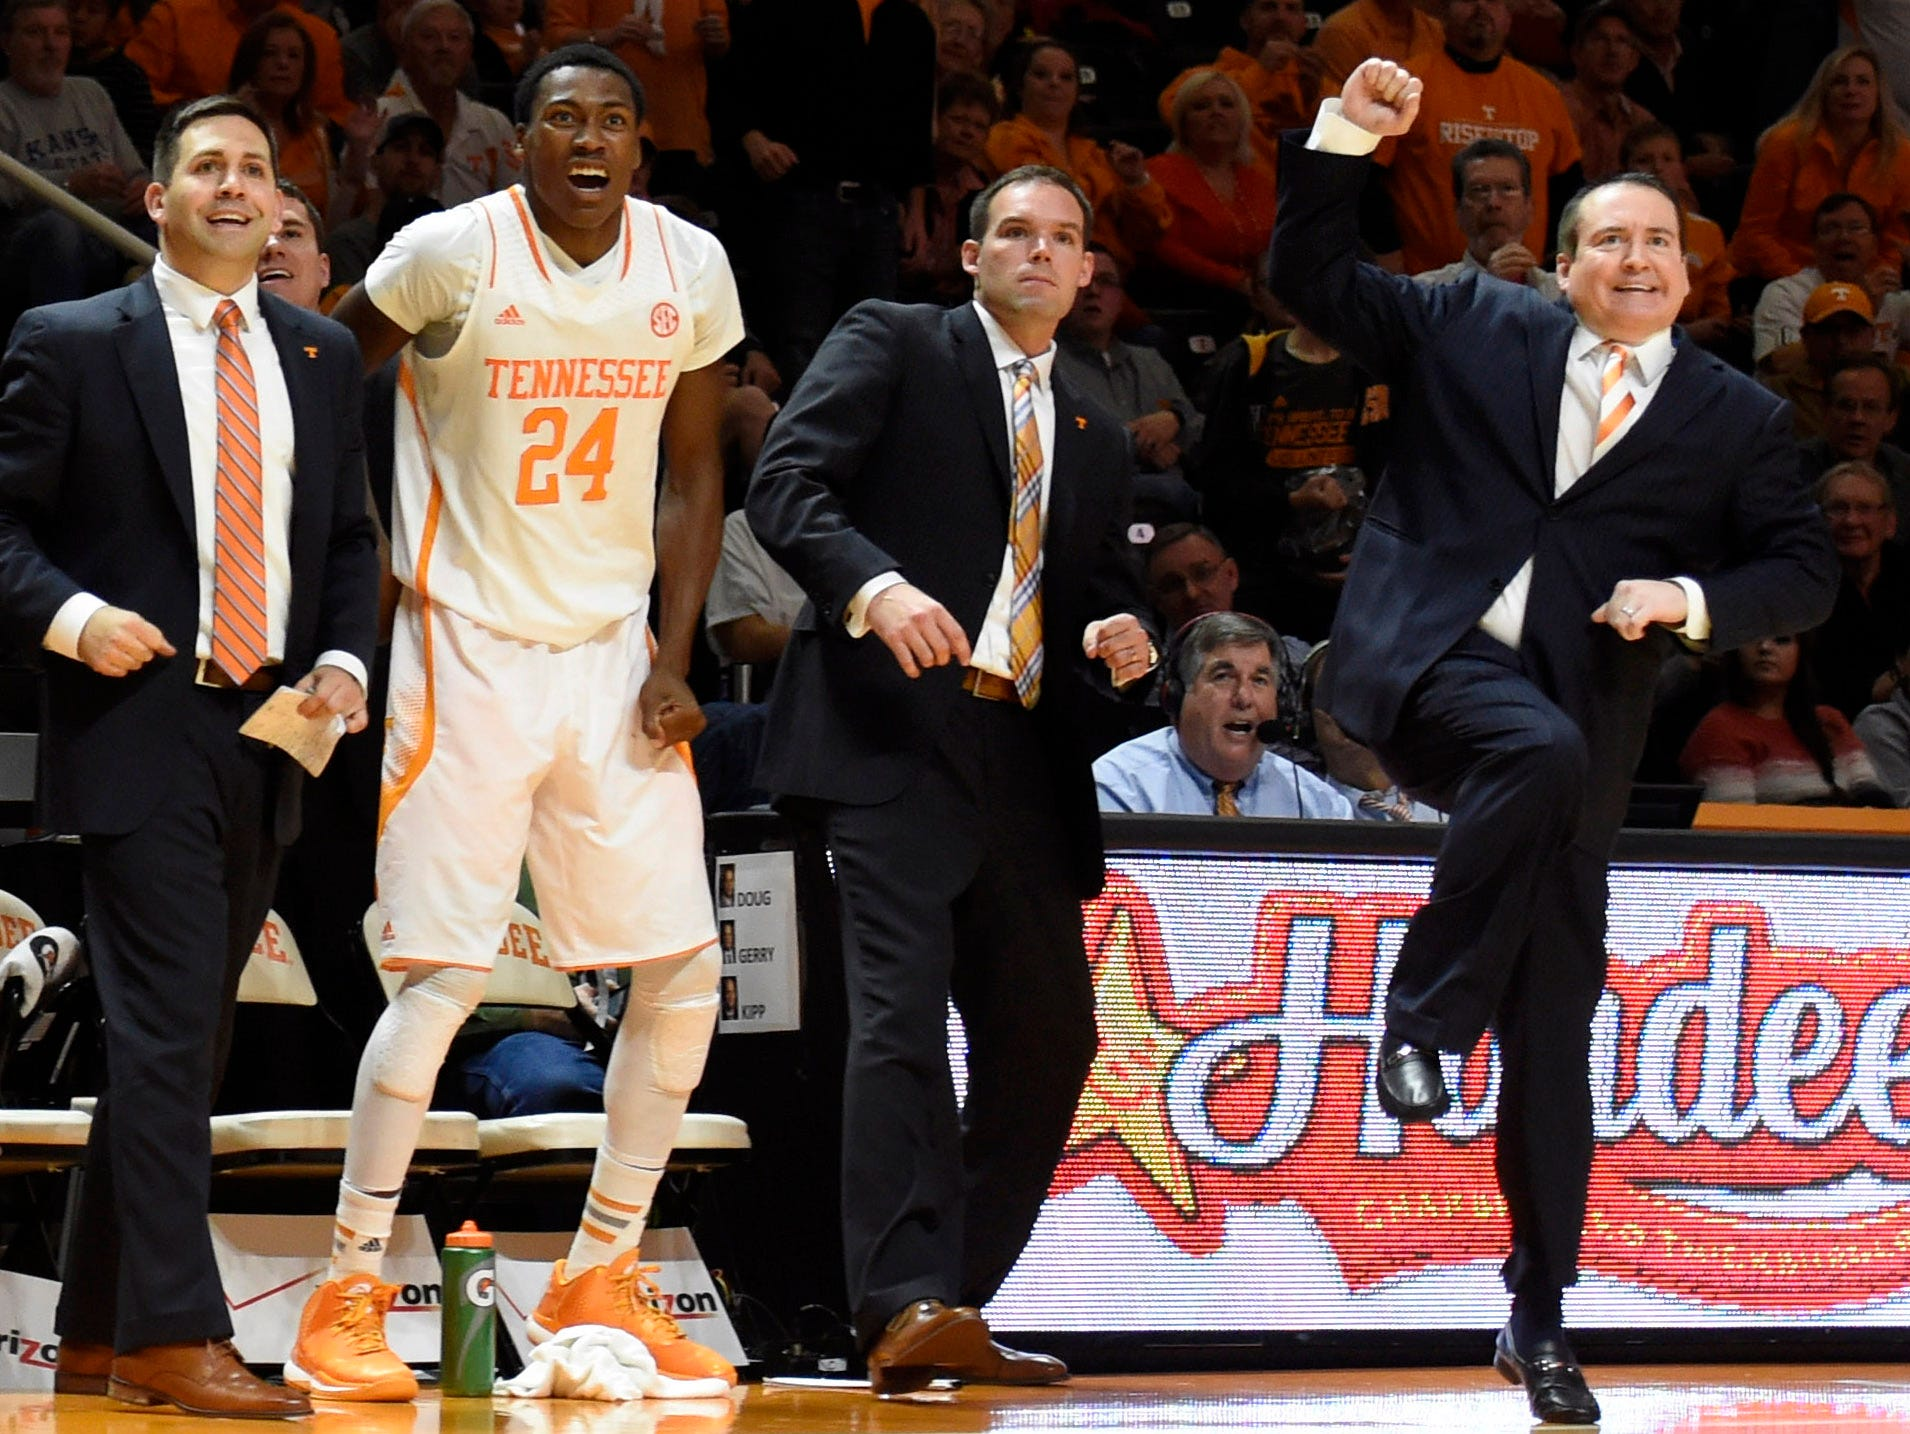 Tennessee assistant coach Beau Braden, left, Tennessee forward Willie Carmichael III (24), Tennessee assistant coach Chris Shumate and Tennessee coach Donnie Tyndall watch from the sideline during their NCAA college basketball game against Kansas State at Thompson-Boling Arena in Knoxville, Tenn., Saturday, Dec. 6, 2014.  Tennessee won 65-64.